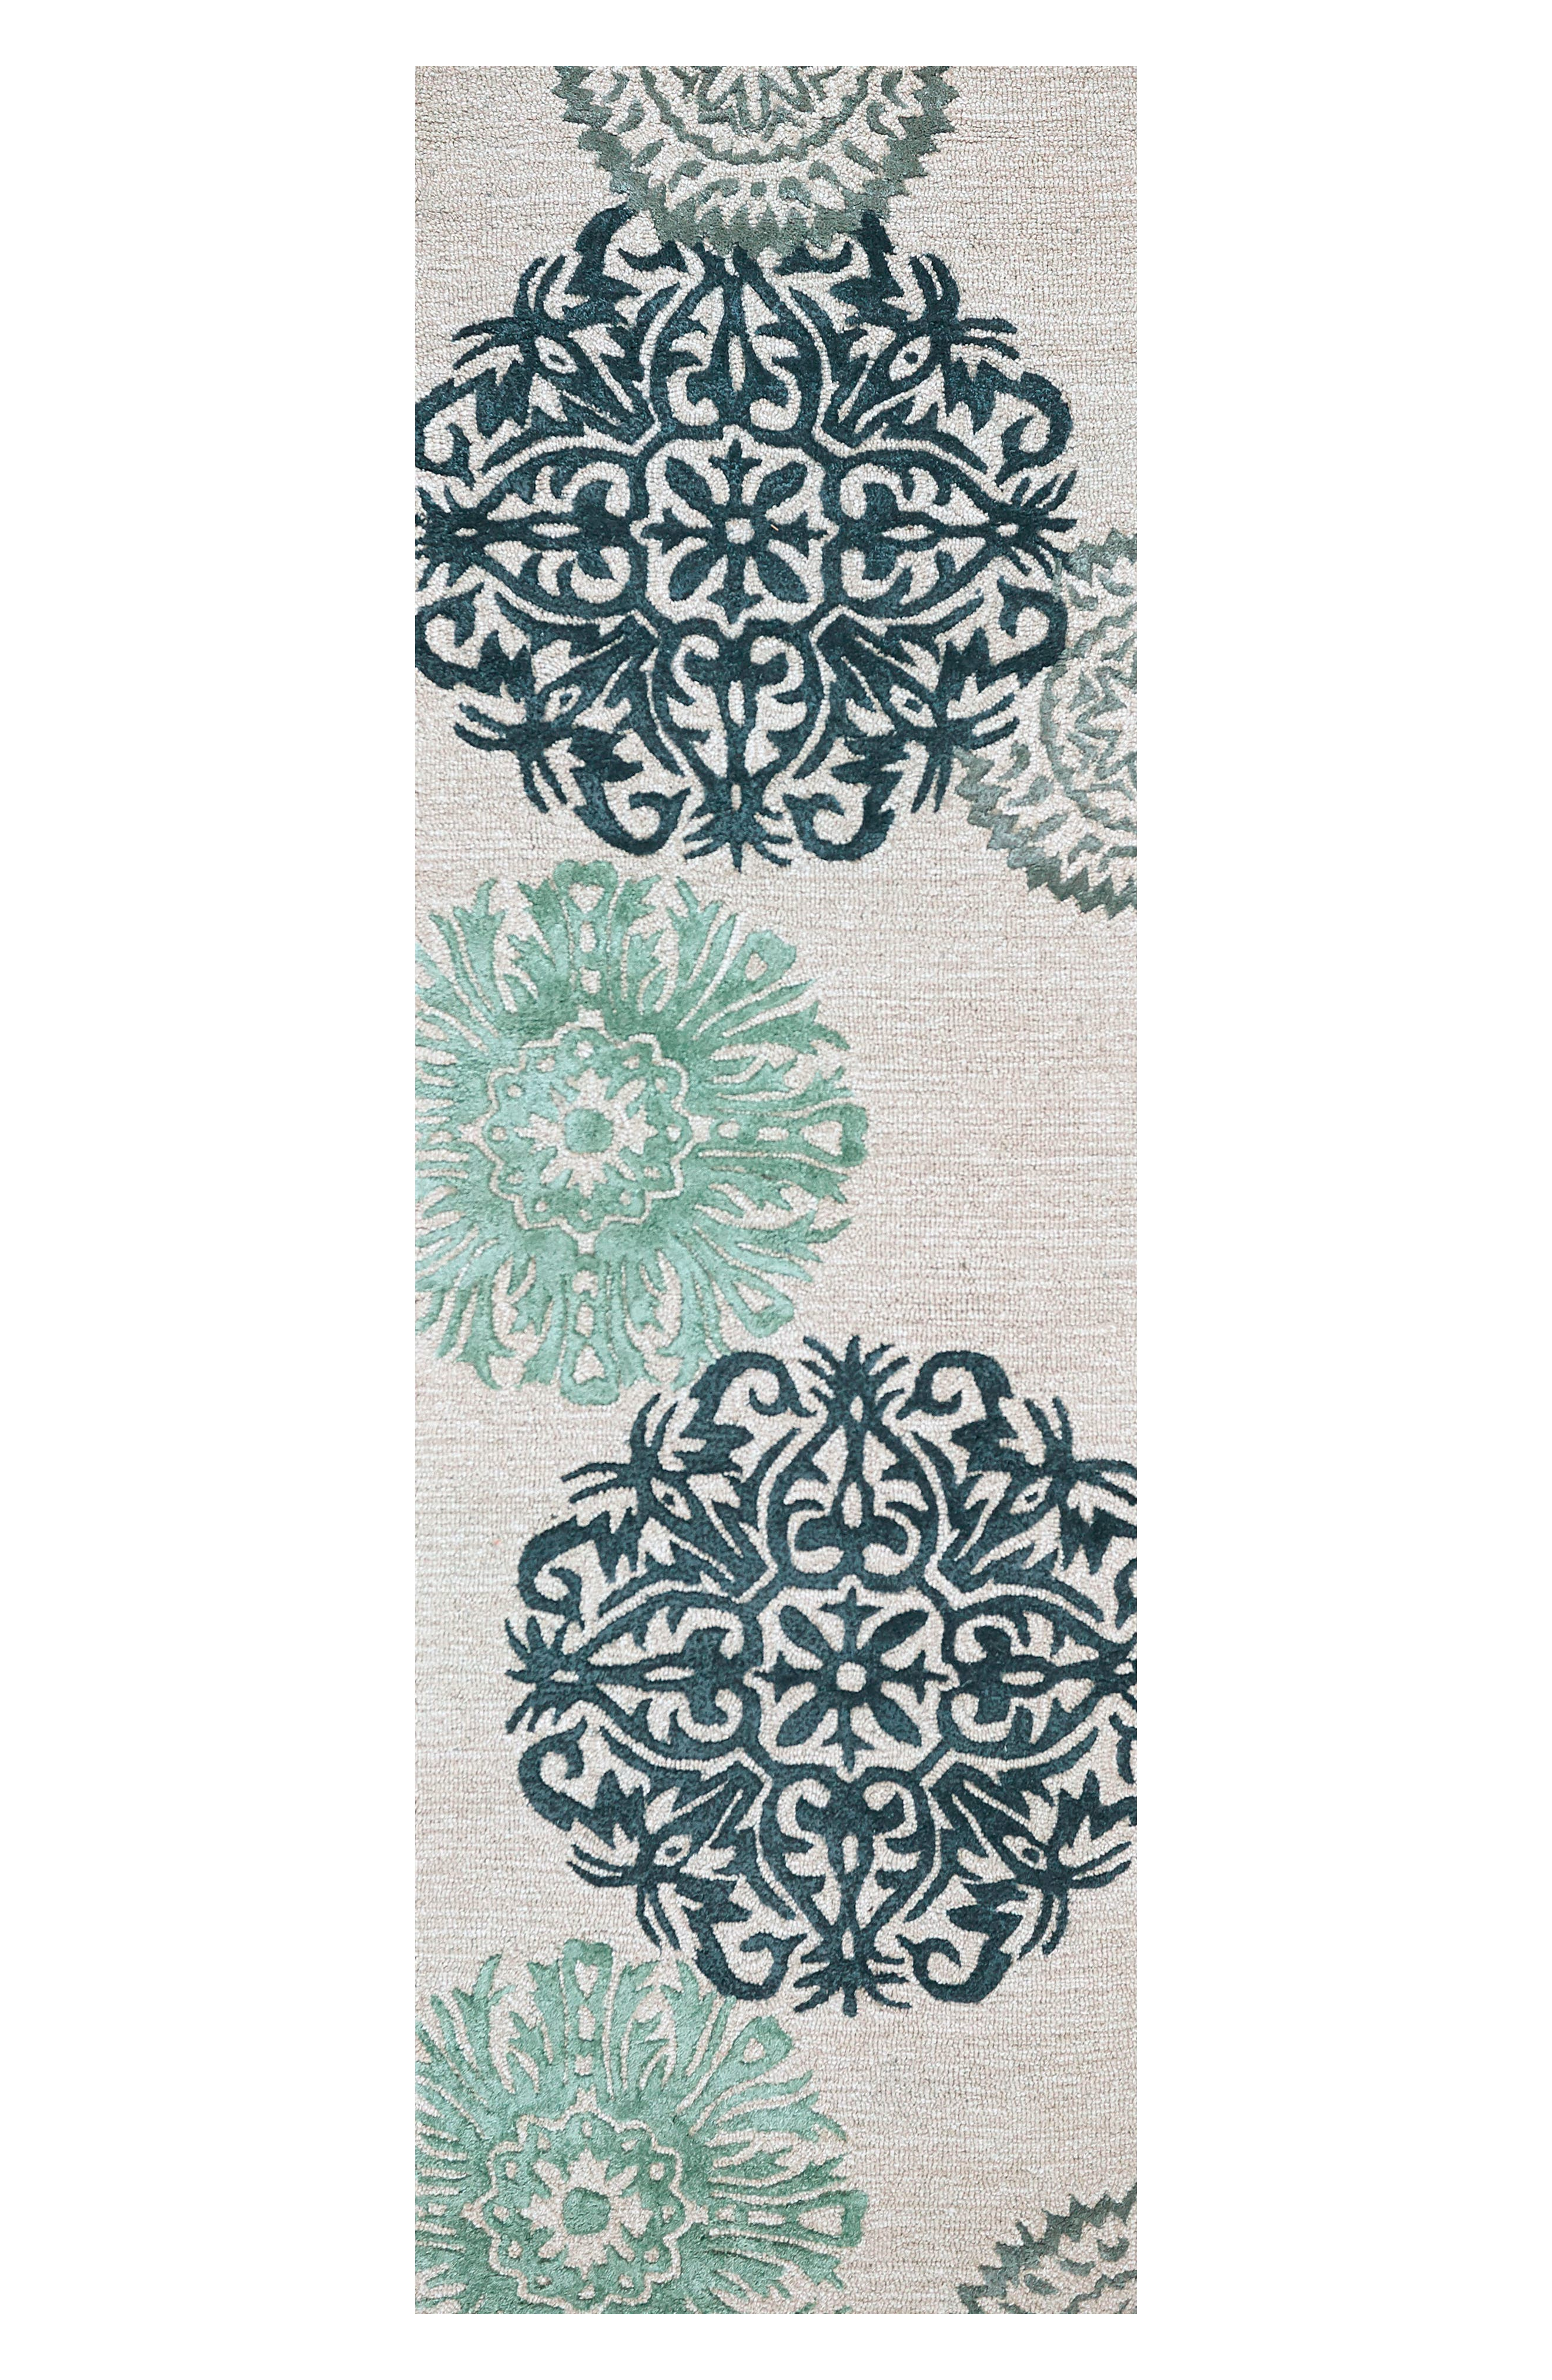 'Eden Harbor' Hand Tufted Wool Area Rug,                             Alternate thumbnail 2, color,                             Navy/ Aqua/ Grey